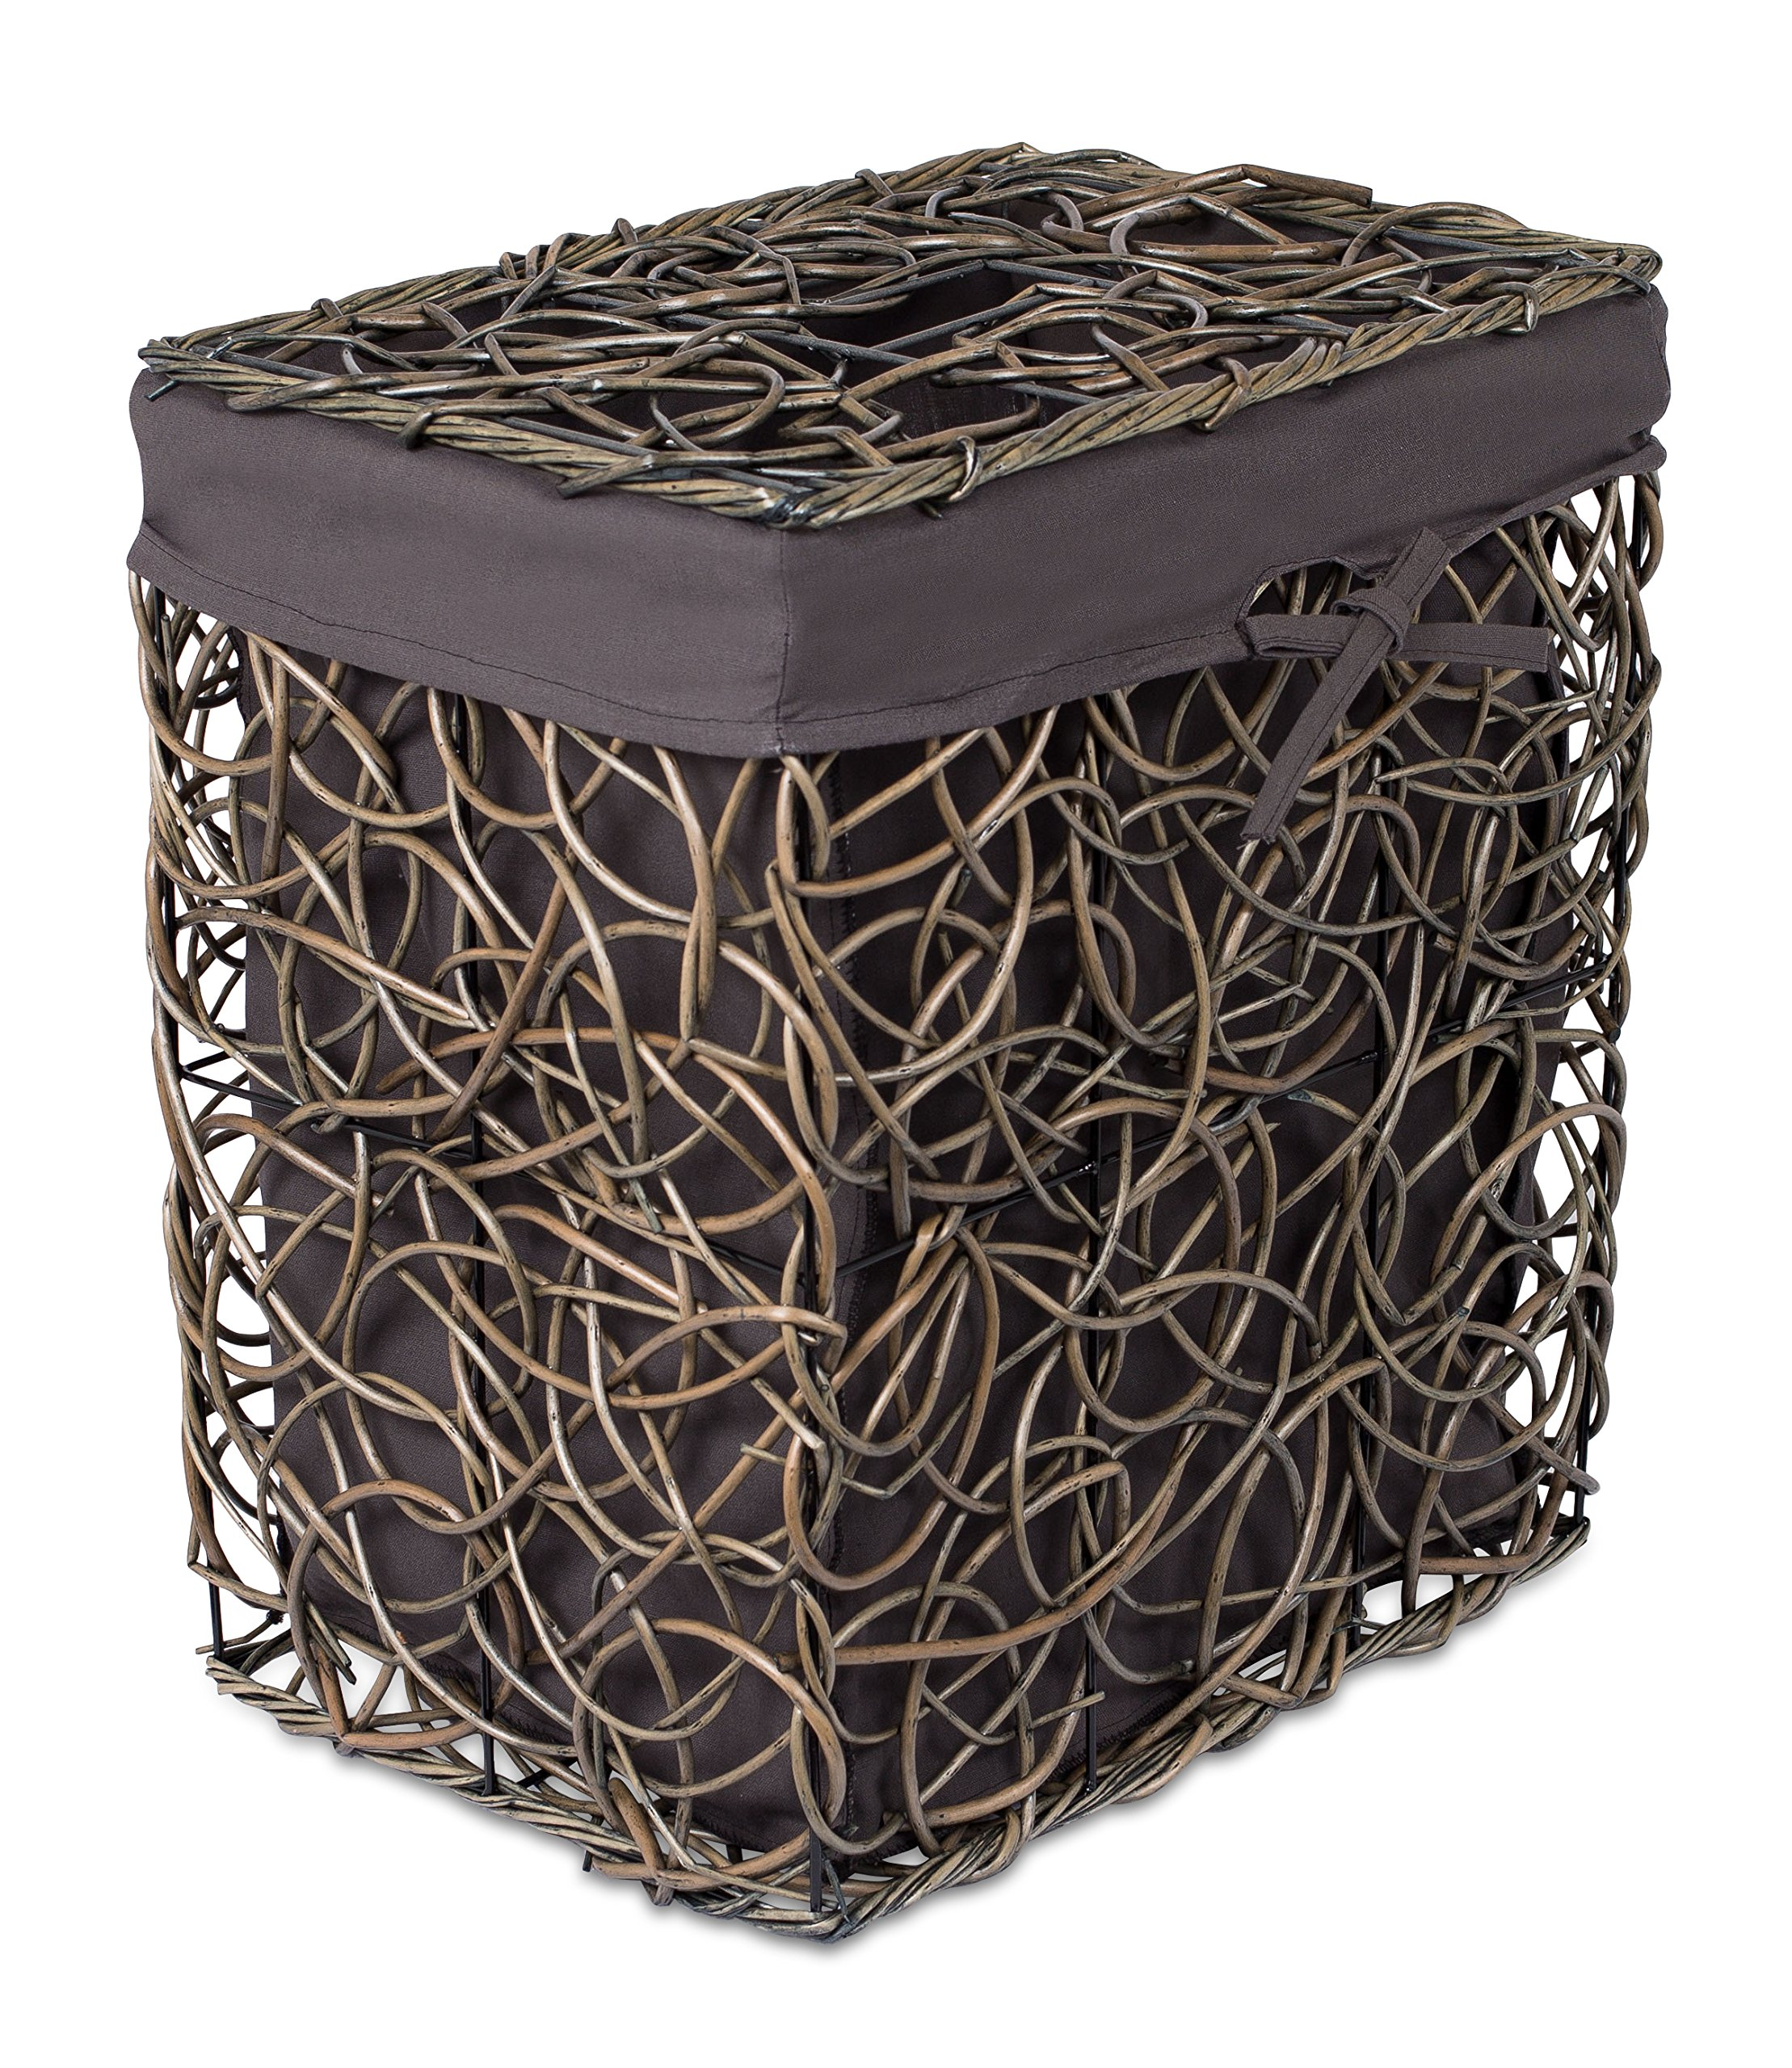 Willow Wicker Storage Basket With Liner For Home: Amazon.com : BirdRock Home Decorative Willow Basket Set